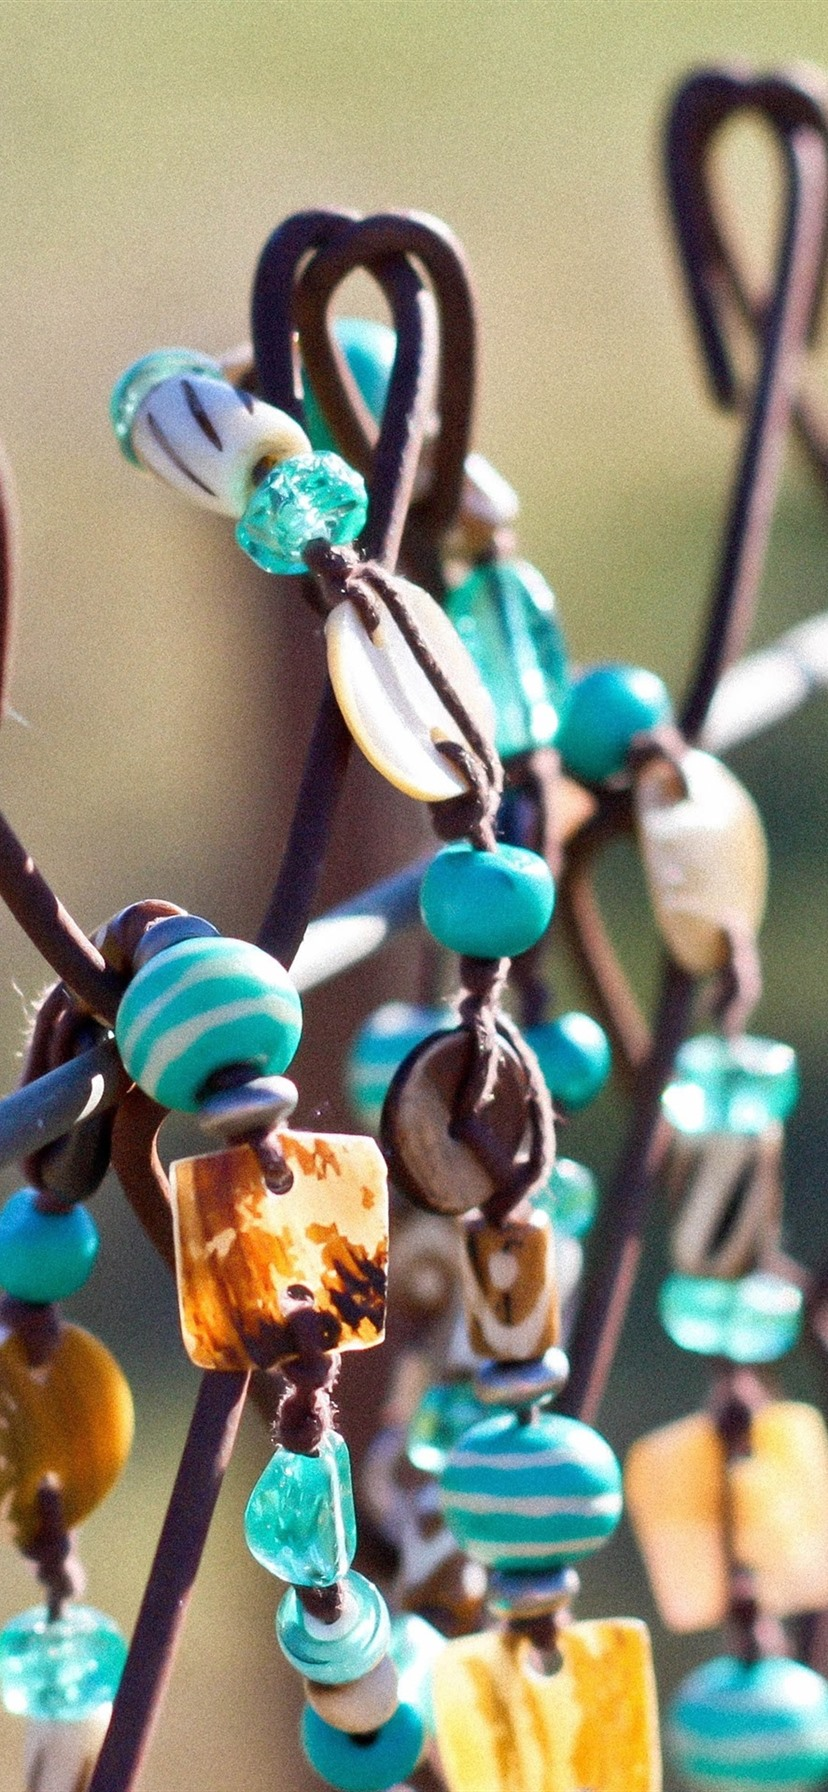 Wallpaper Jewelry On Fence 3840x2160 Uhd 4k Picture Image